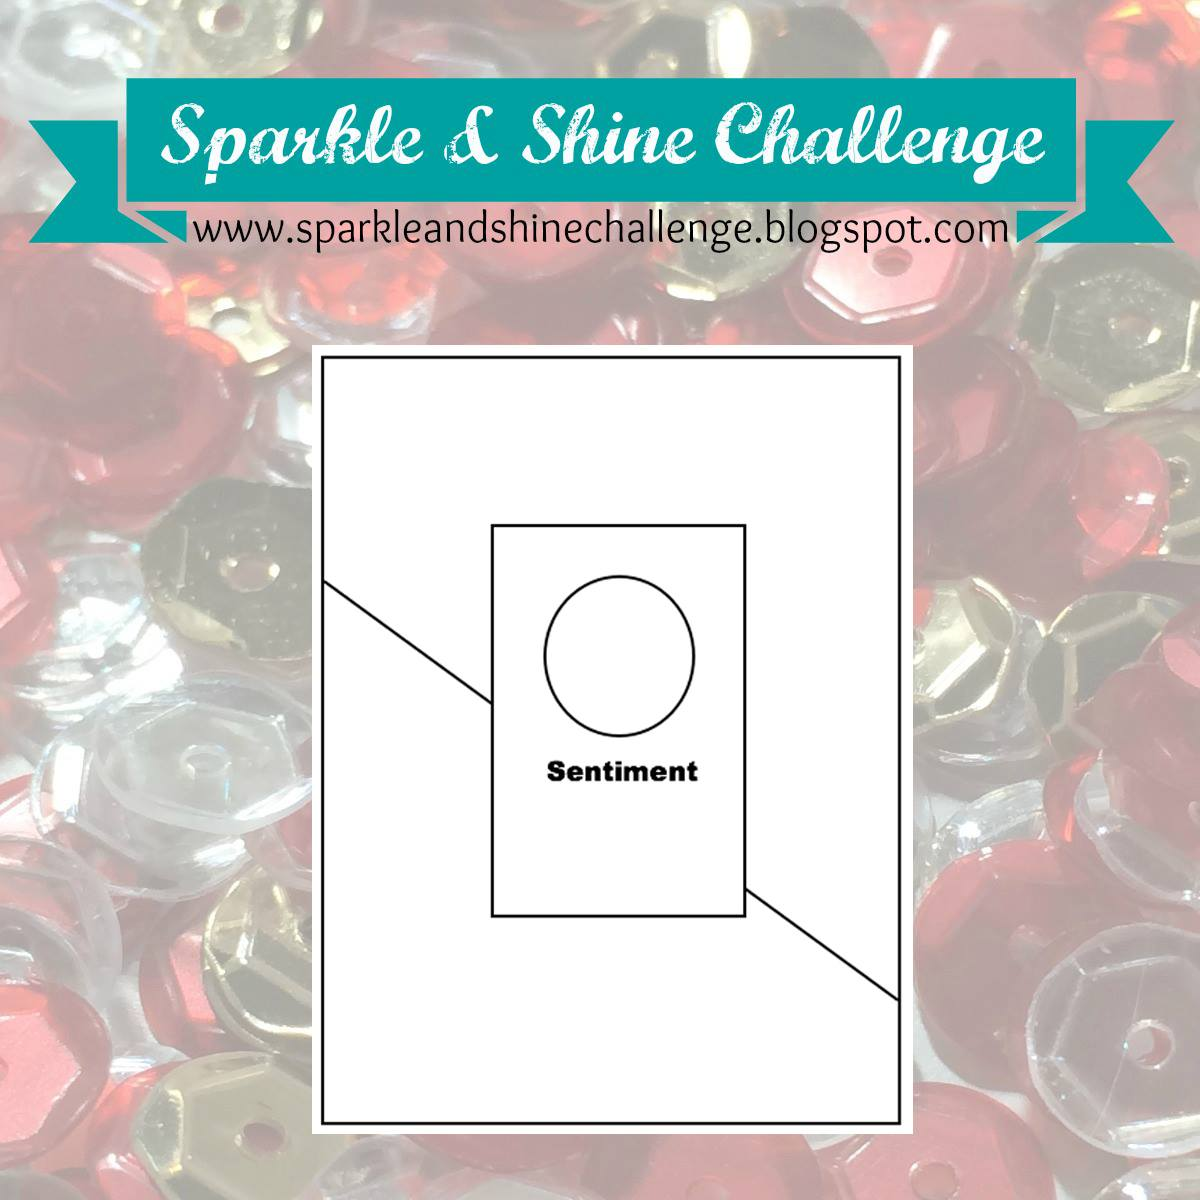 http://sparkleandshinechallenge.blogspot.ie/2015/03/sparkle-shine-challenge-two-sketch.html